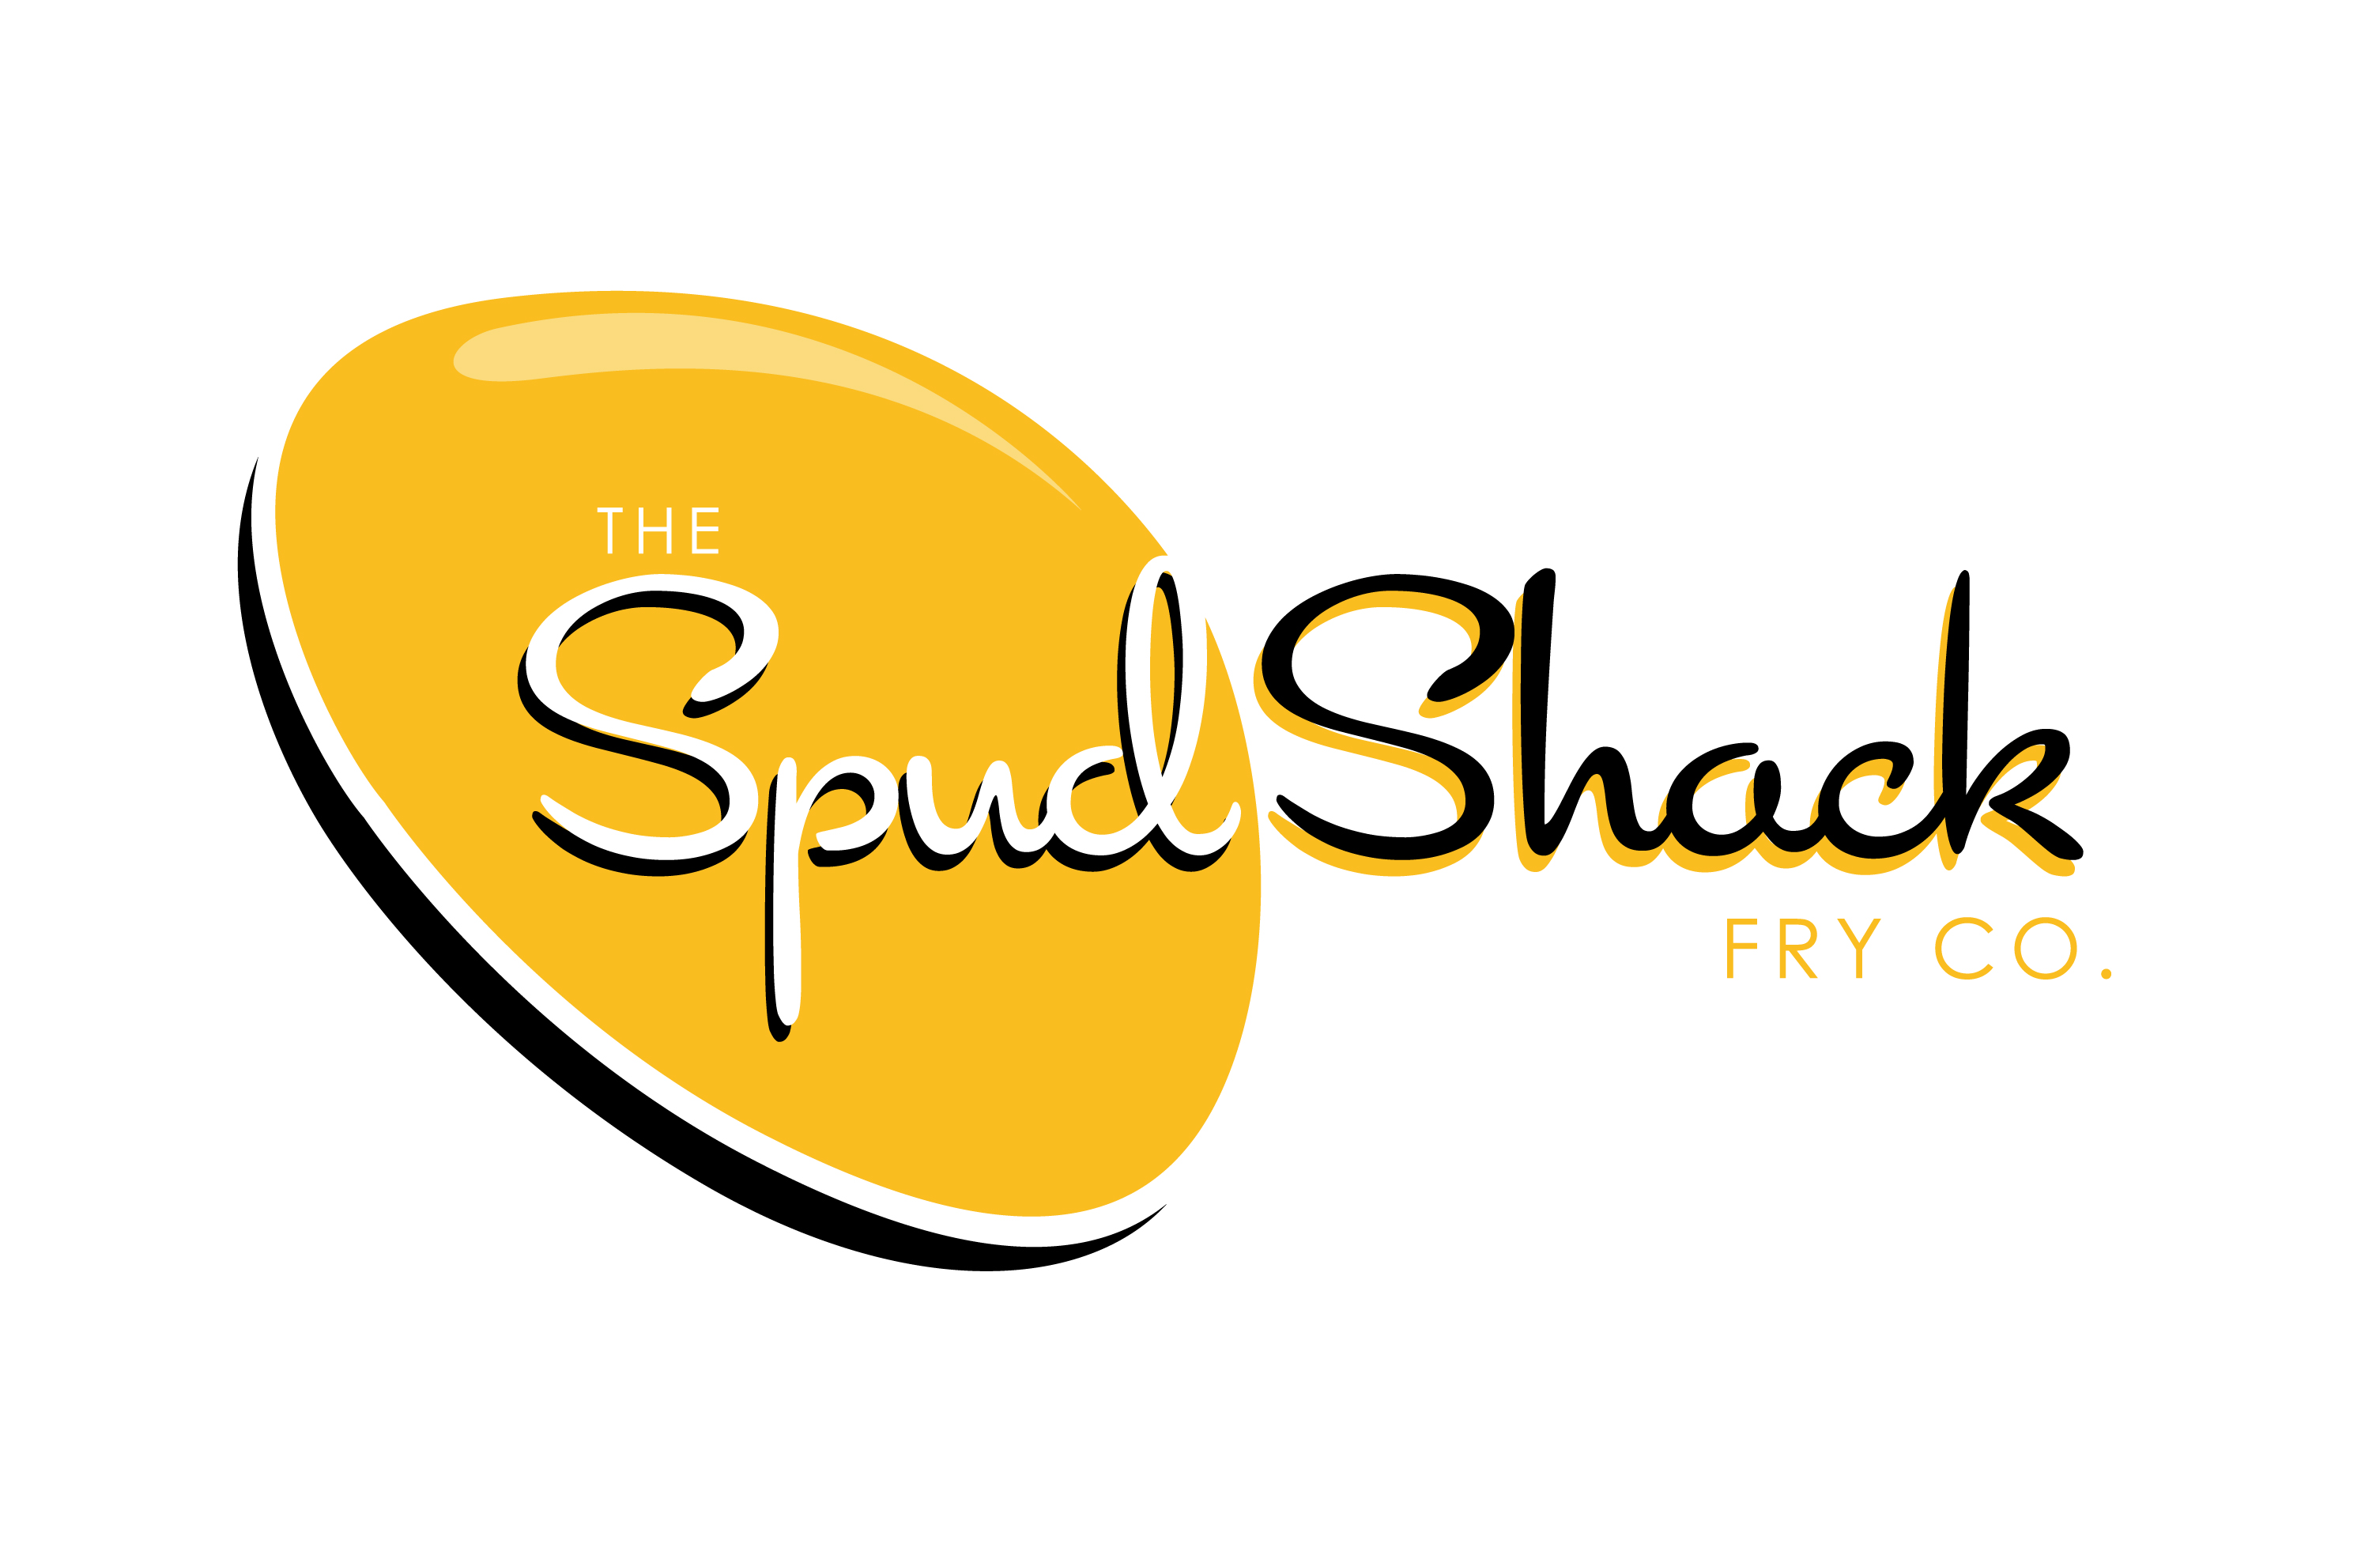 The Spud Shack Fry Co